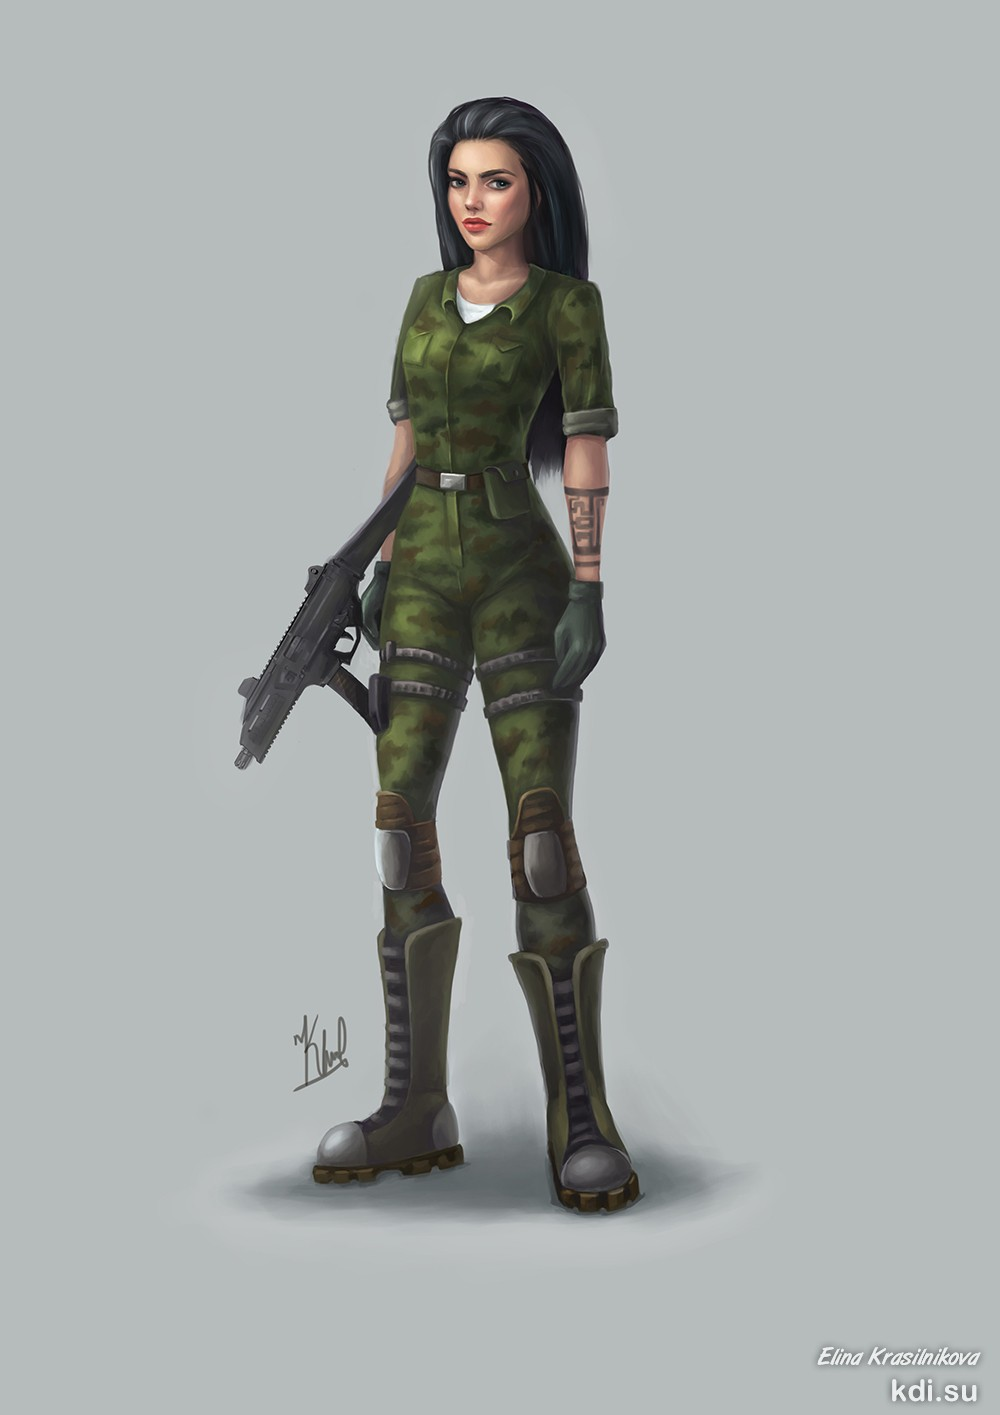 Drawn Girl soldier